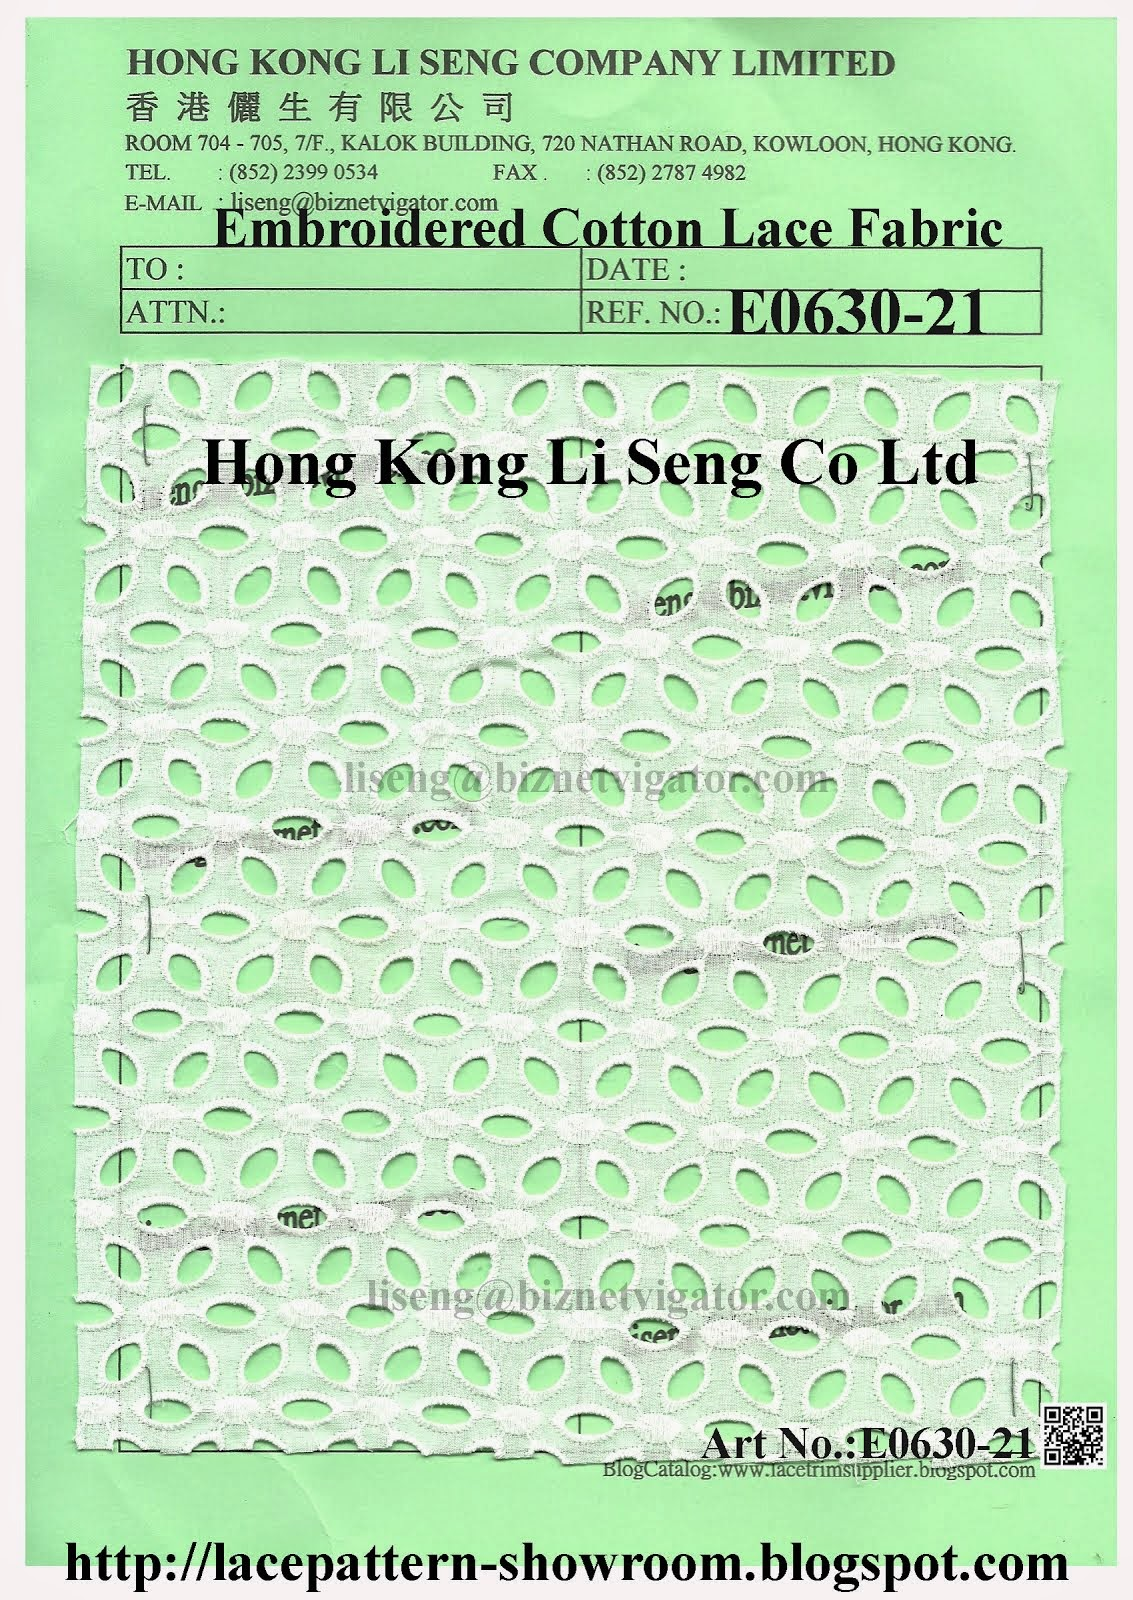 New Lace Pattern - Embroidered Cotton Lace Fabric Manufacturer Wholesaler and Supplier